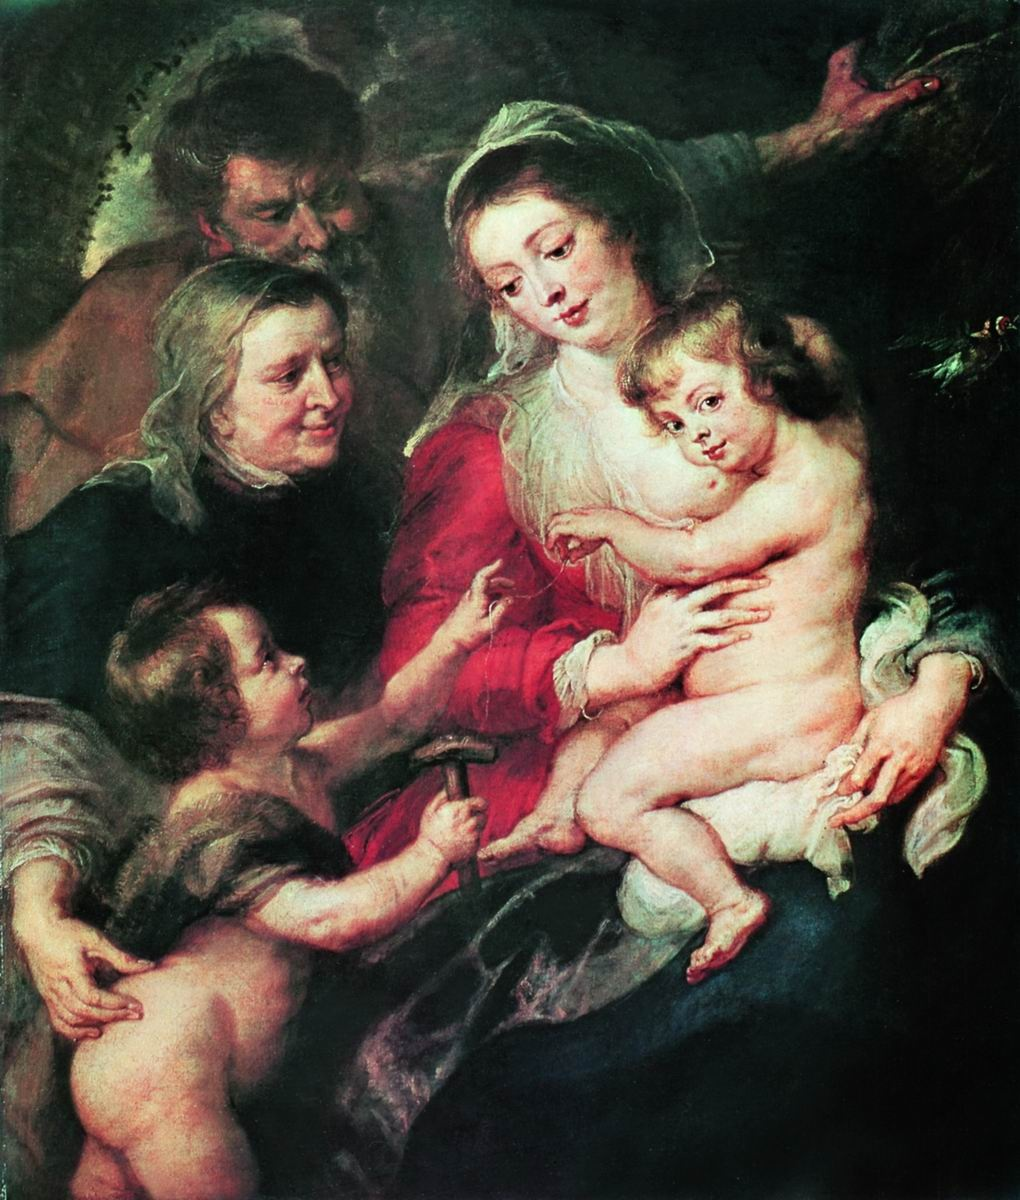 a review of peter paul reubens paintings Peter paul rubens (1577-1640) ought to be the very model of an artist, sane, secure and completely fulfilled, quite apart from being the painter's painter par excellence.